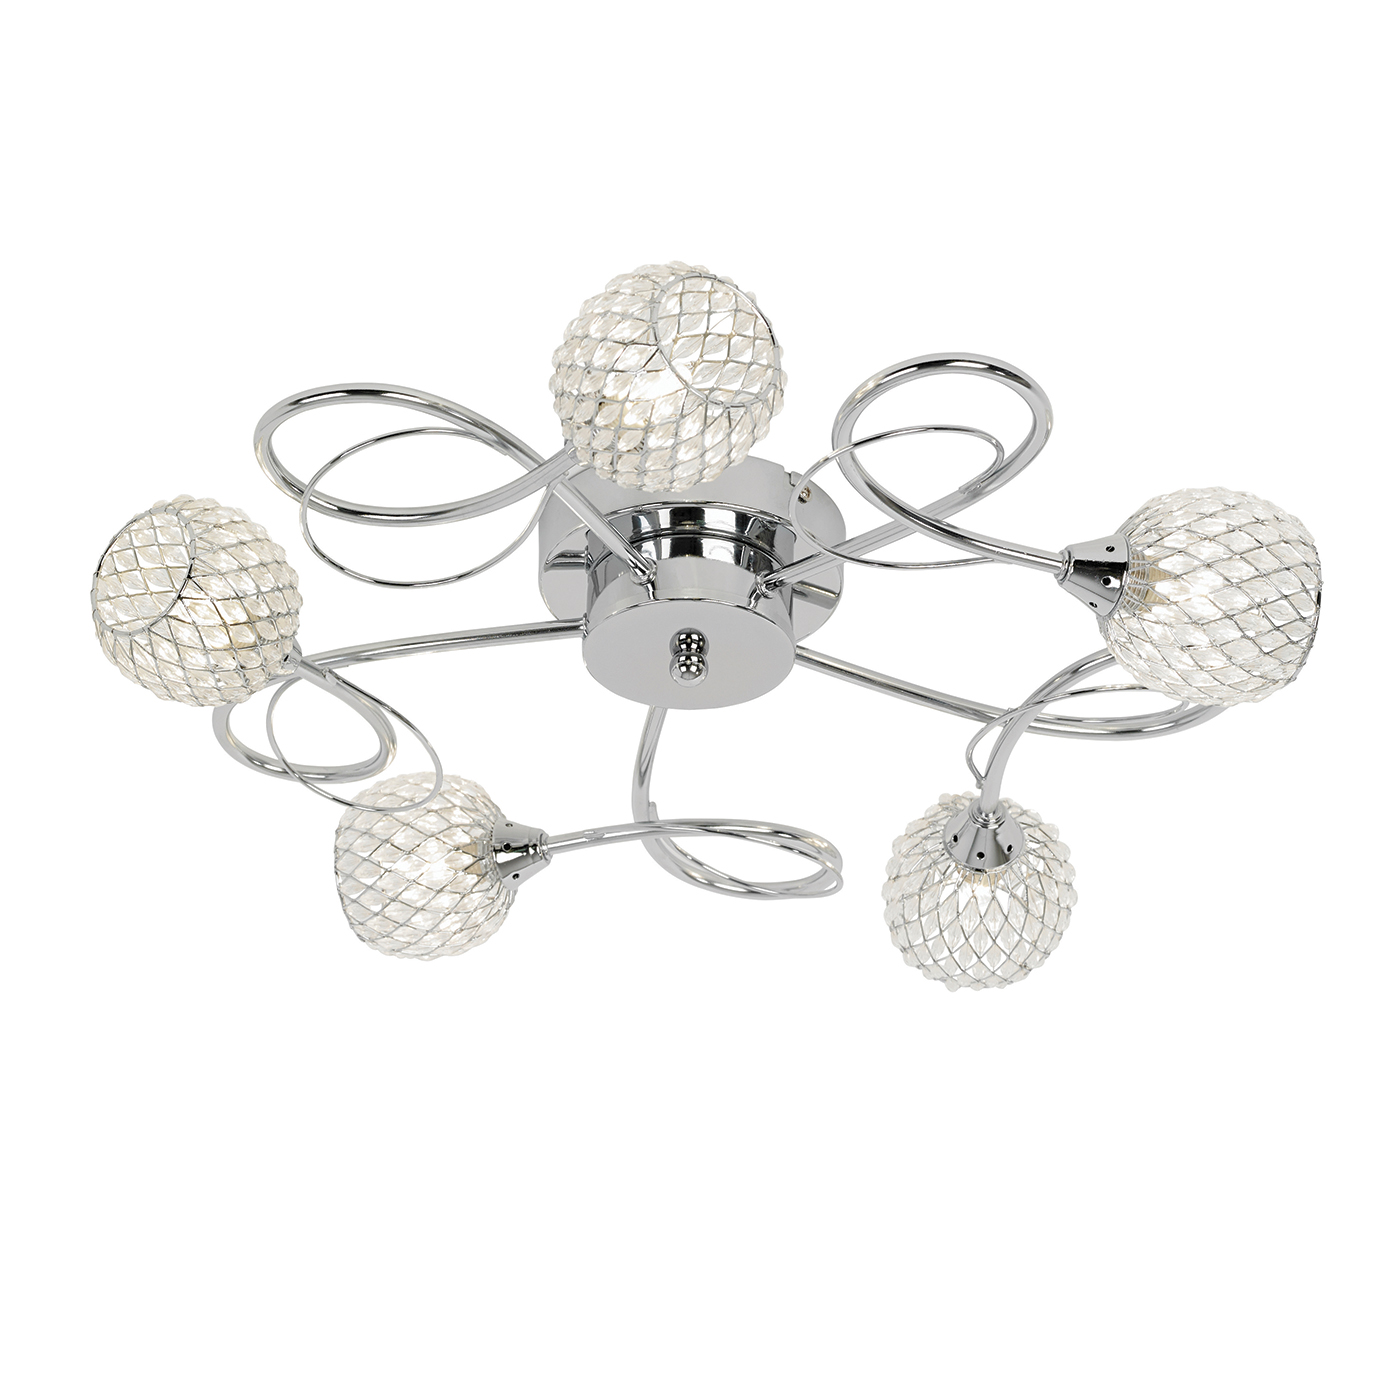 Endon Aherne ceiling light 5x 33W Chrome effect chrome wire & clear bead shade